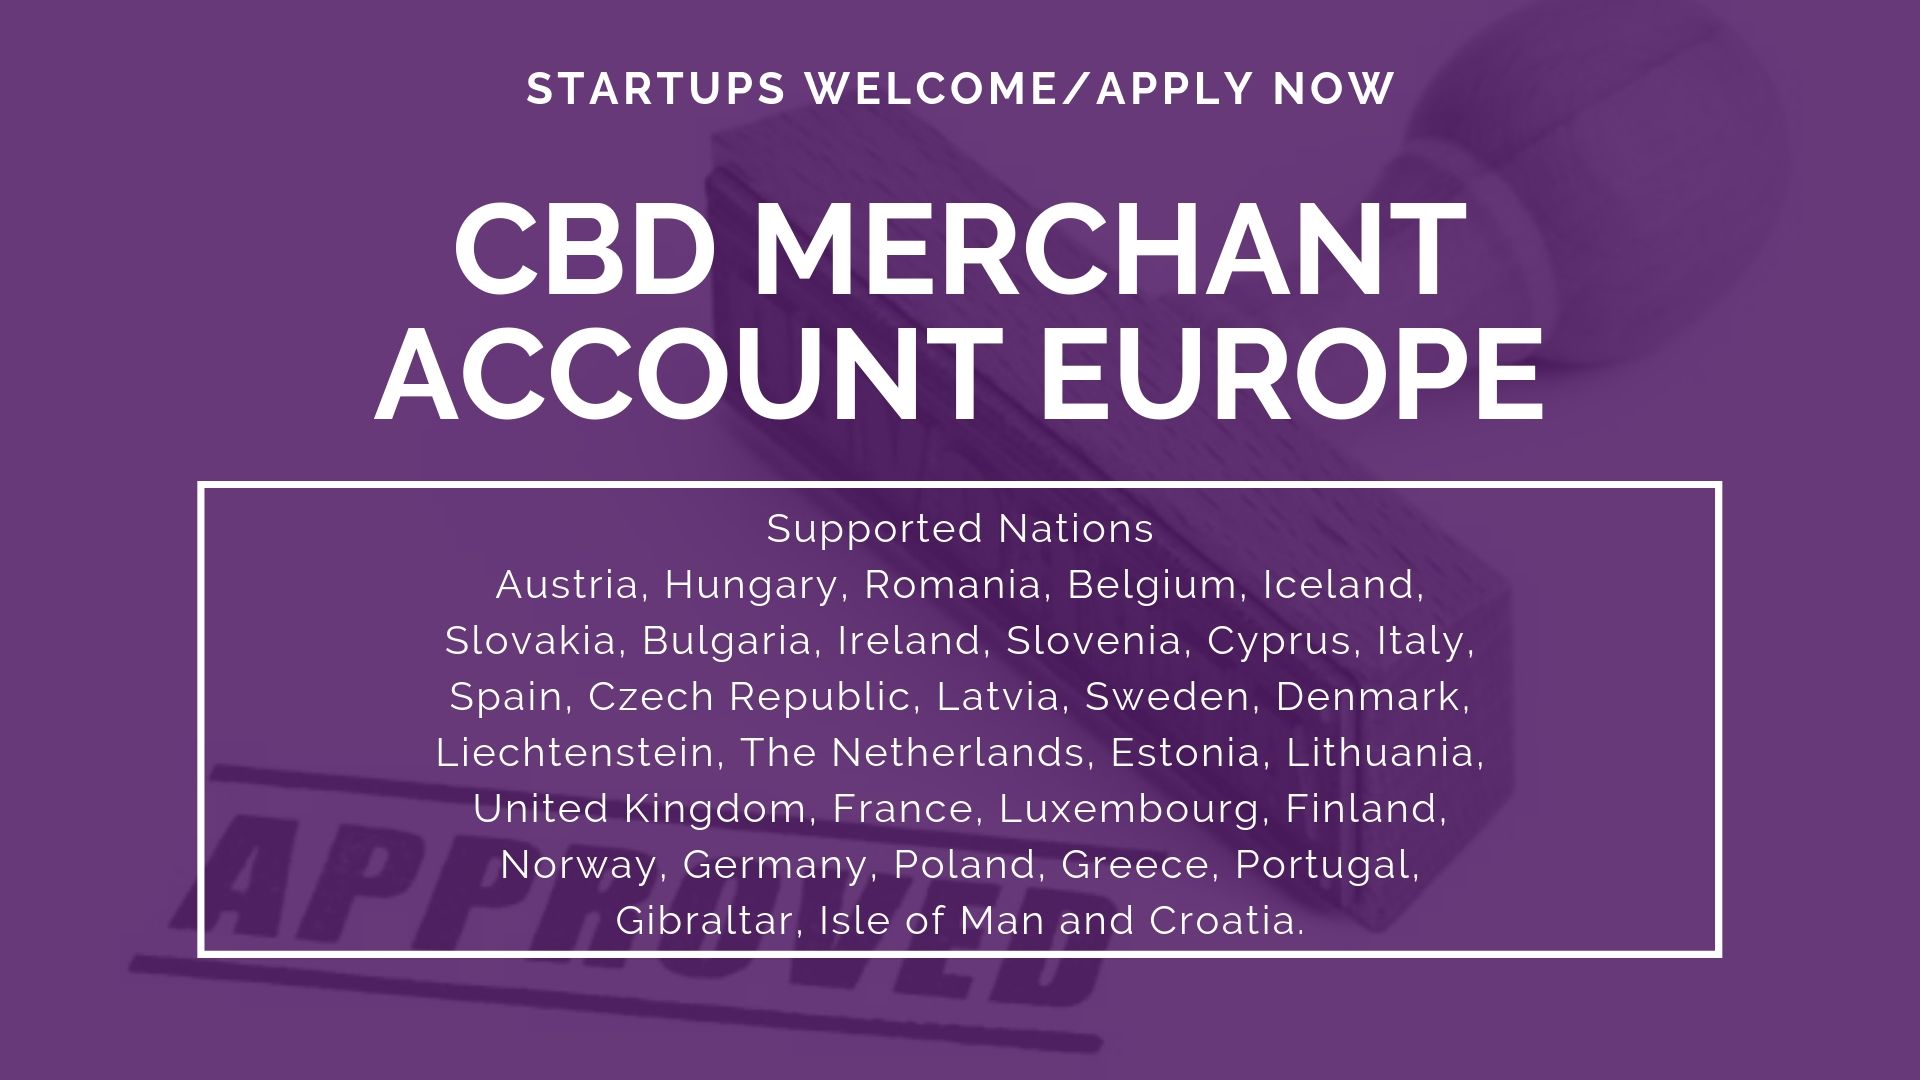 CBD Merchant Account Europe